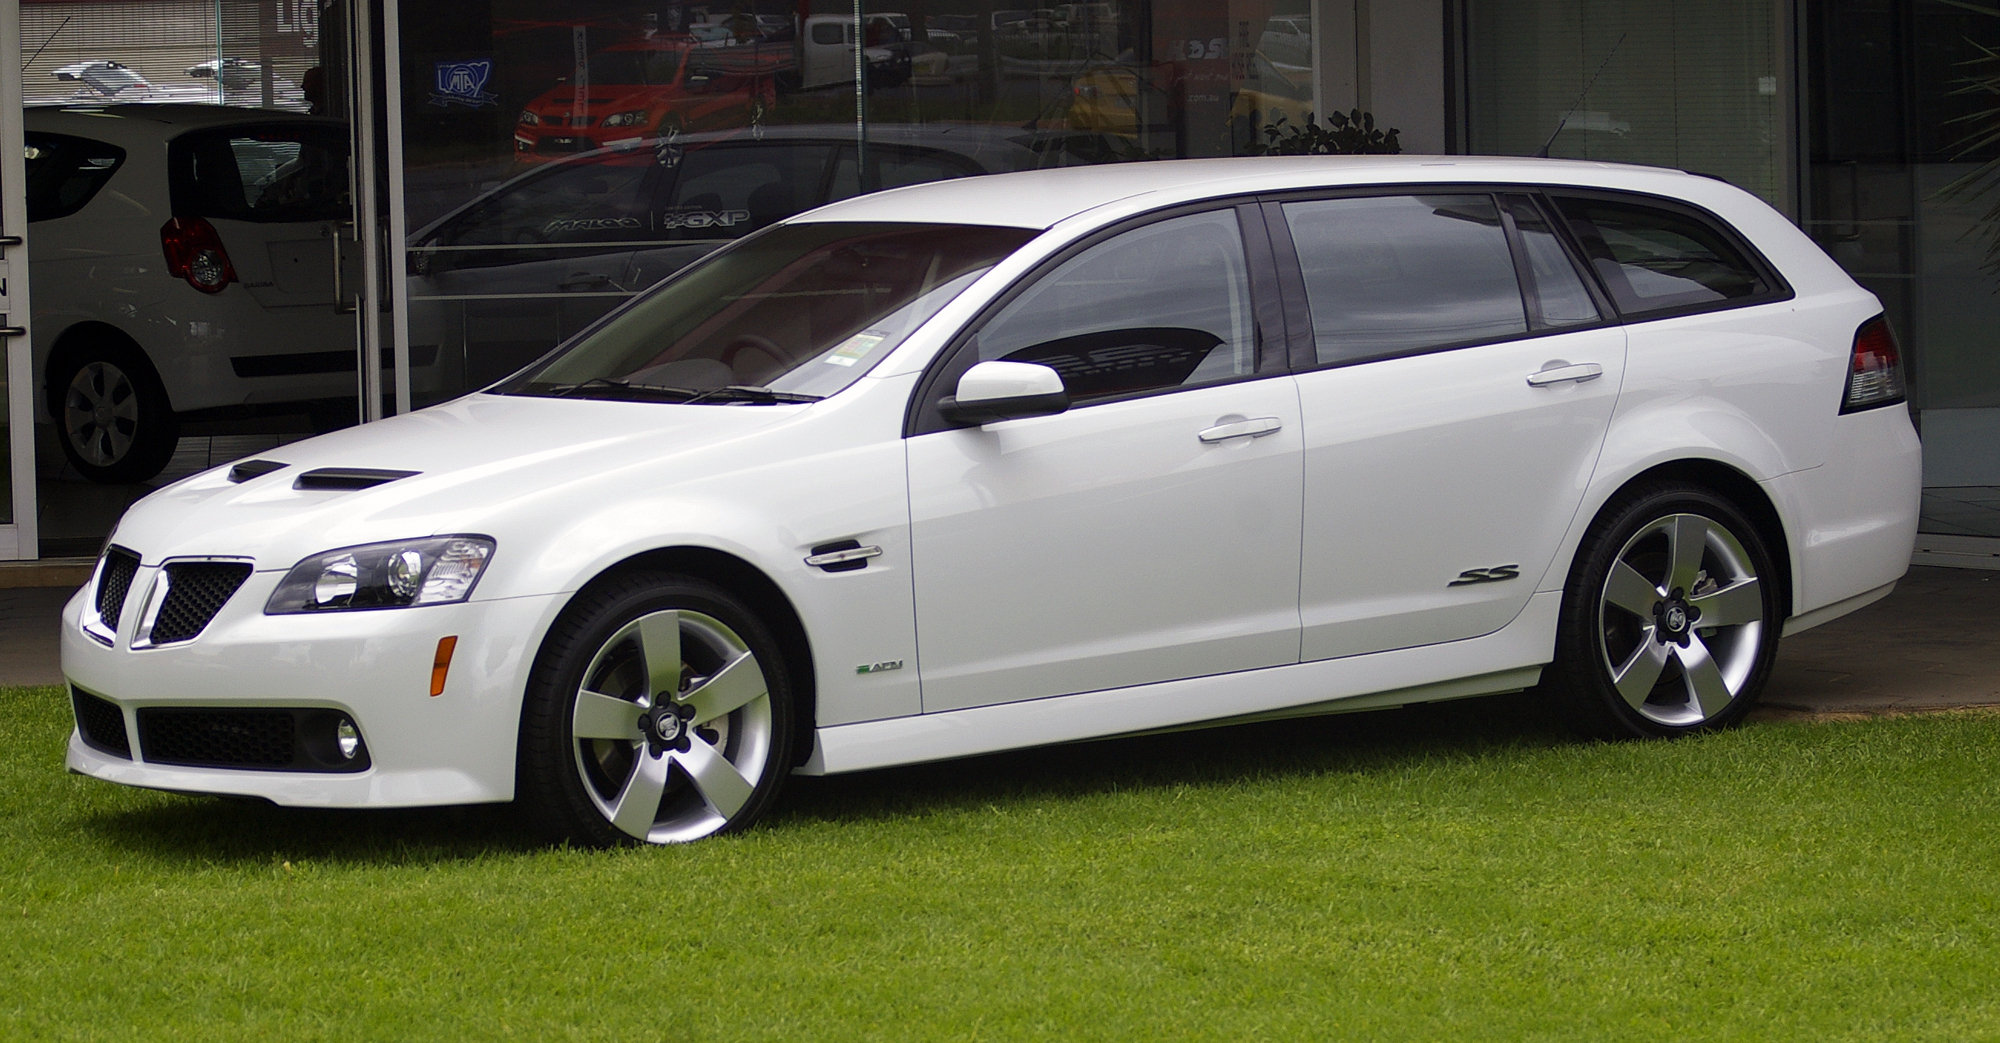 http://upload.wikimedia.org/wikipedia/commons/0/00/2009%E2%80%932010_Holden_VE_Commodore_(MY10)_SS_V_Special_Edition_Sportwagon.jpg